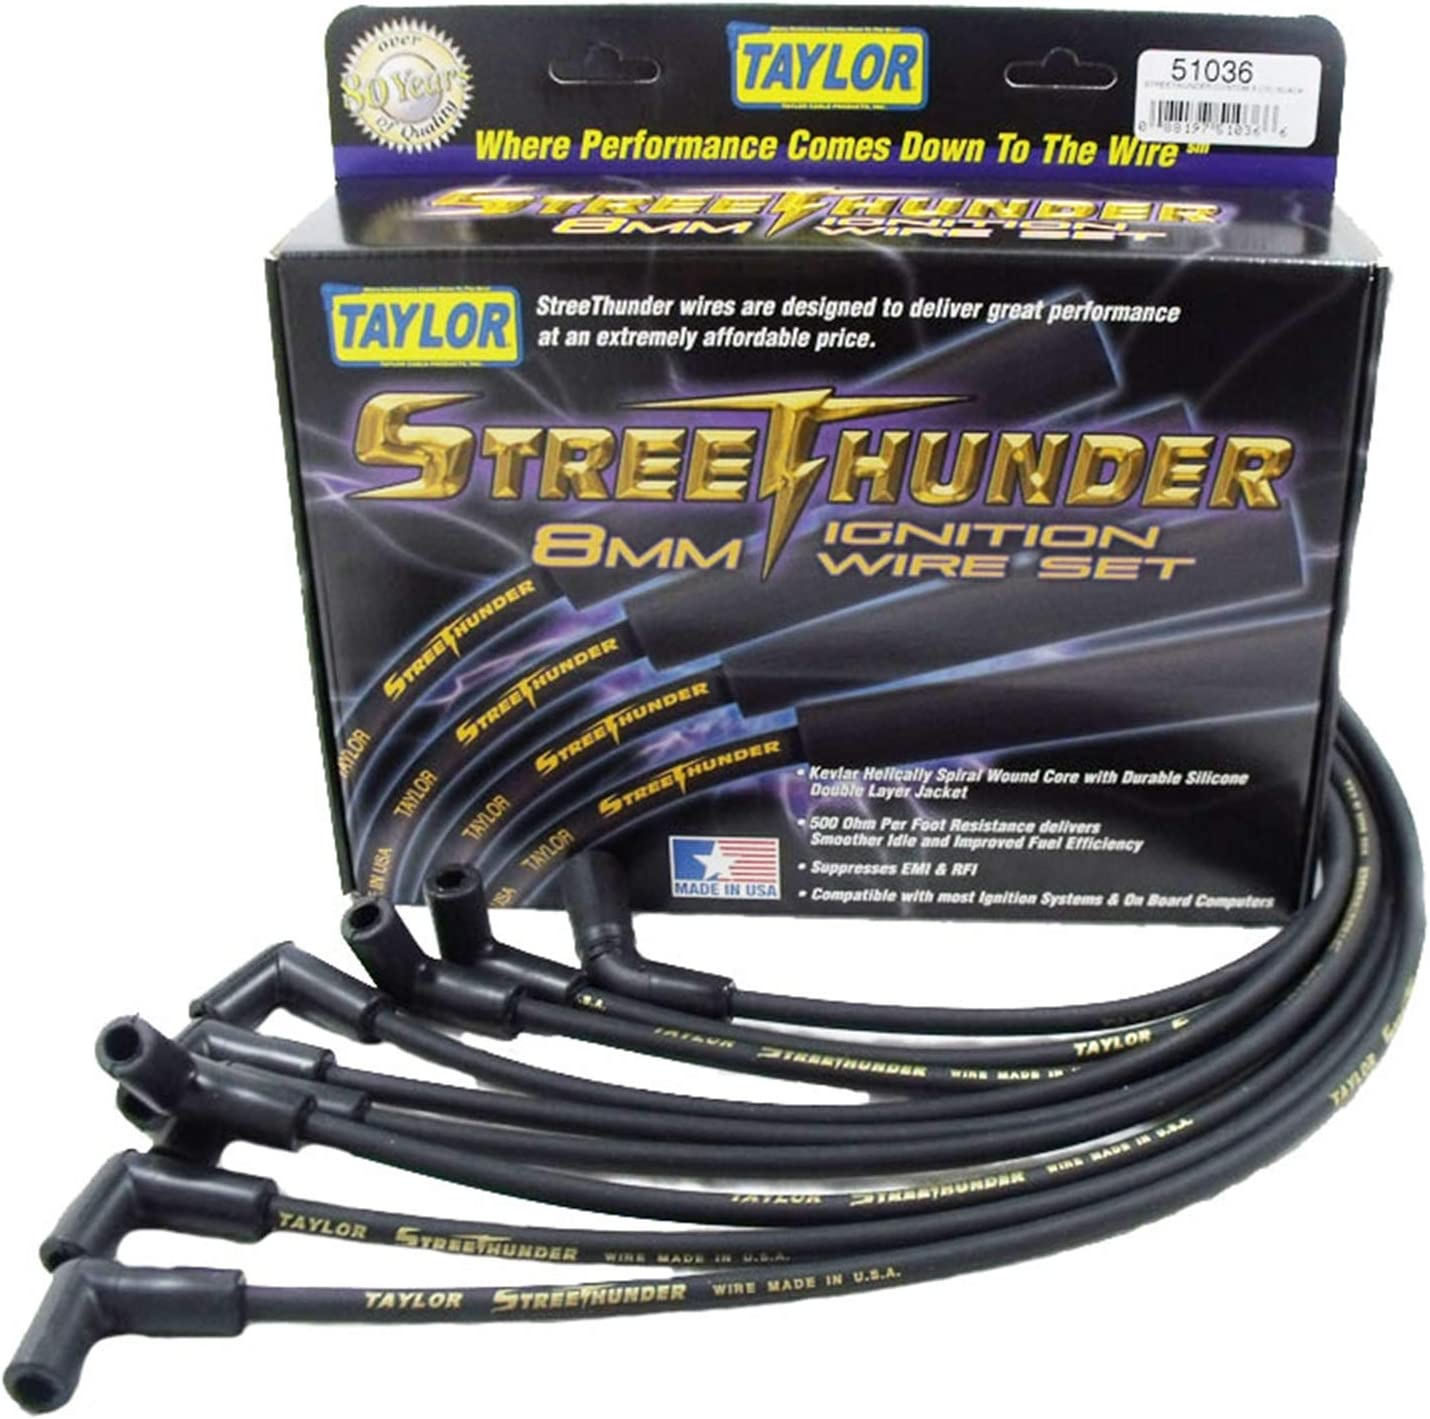 Taylor Cable 51036 Ignition 1 Wire Pack unisex High quality new Set